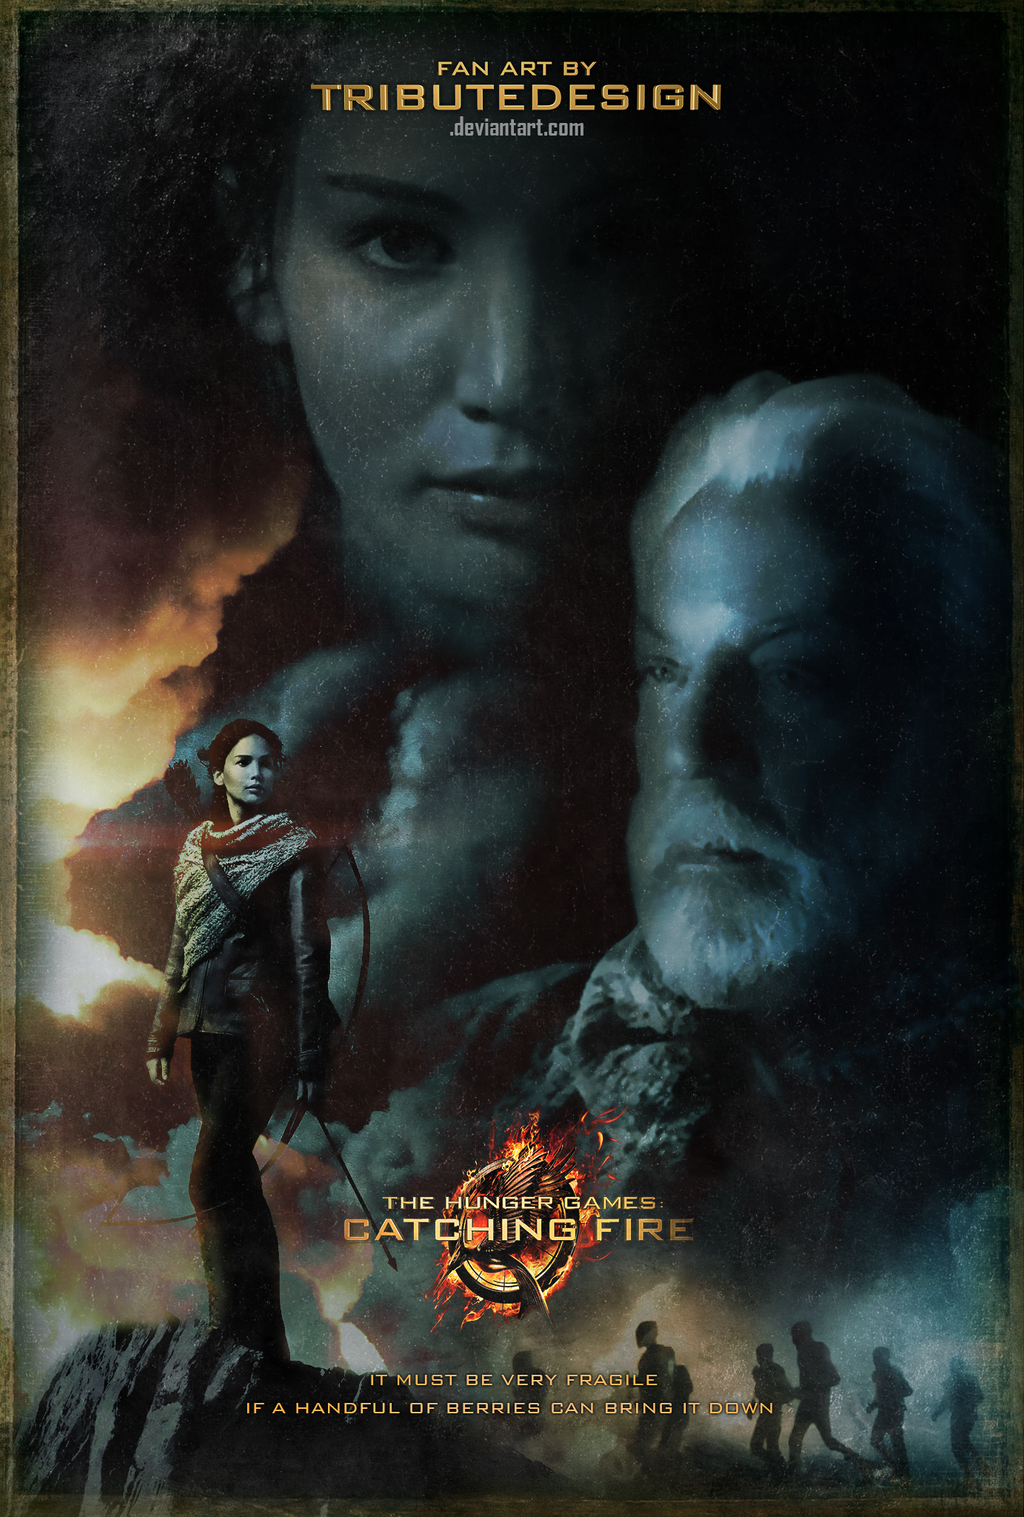 Catching Fire Poster - Very Fragile by TributeDesign